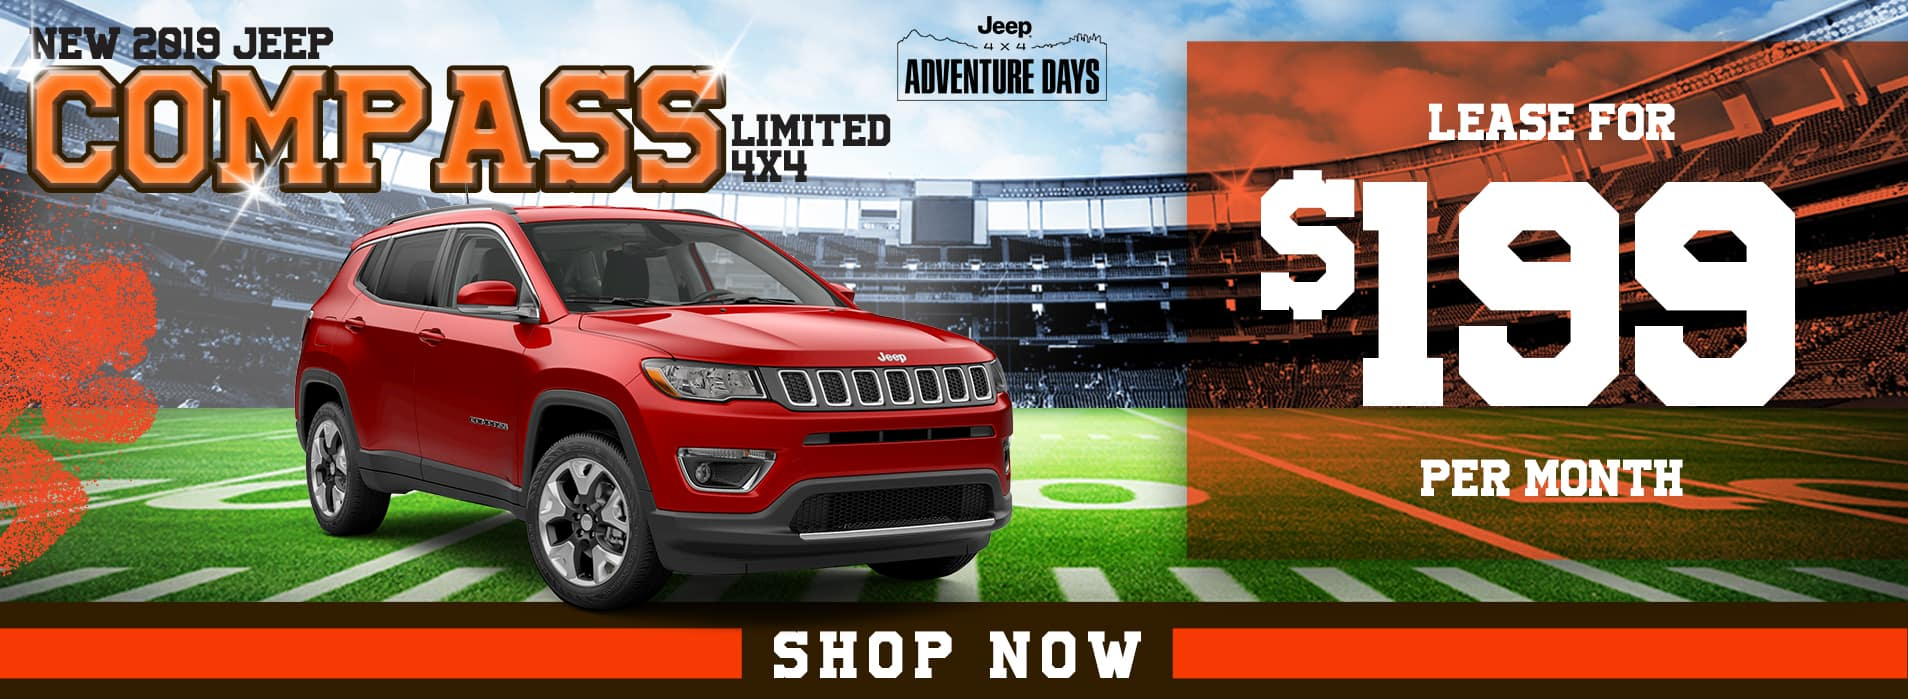 New 2019 Jeep Compass Limited 4x4 Lease for $199 Per month